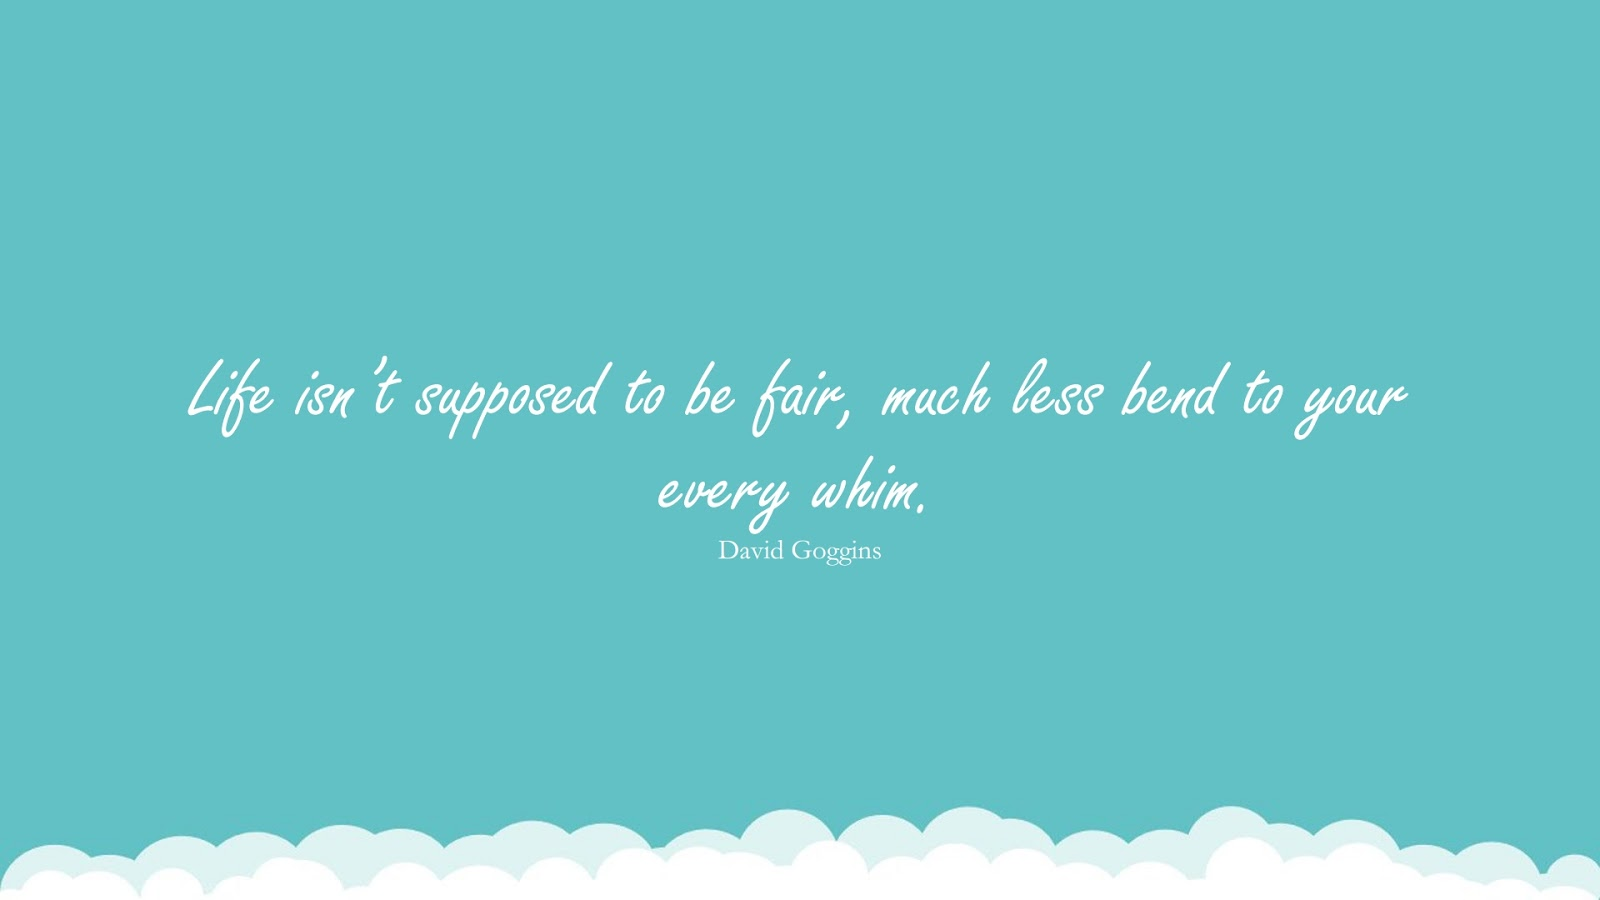 Life isn't supposed to be fair, much less bend to your every whim. (David Goggins);  #BestQuotes